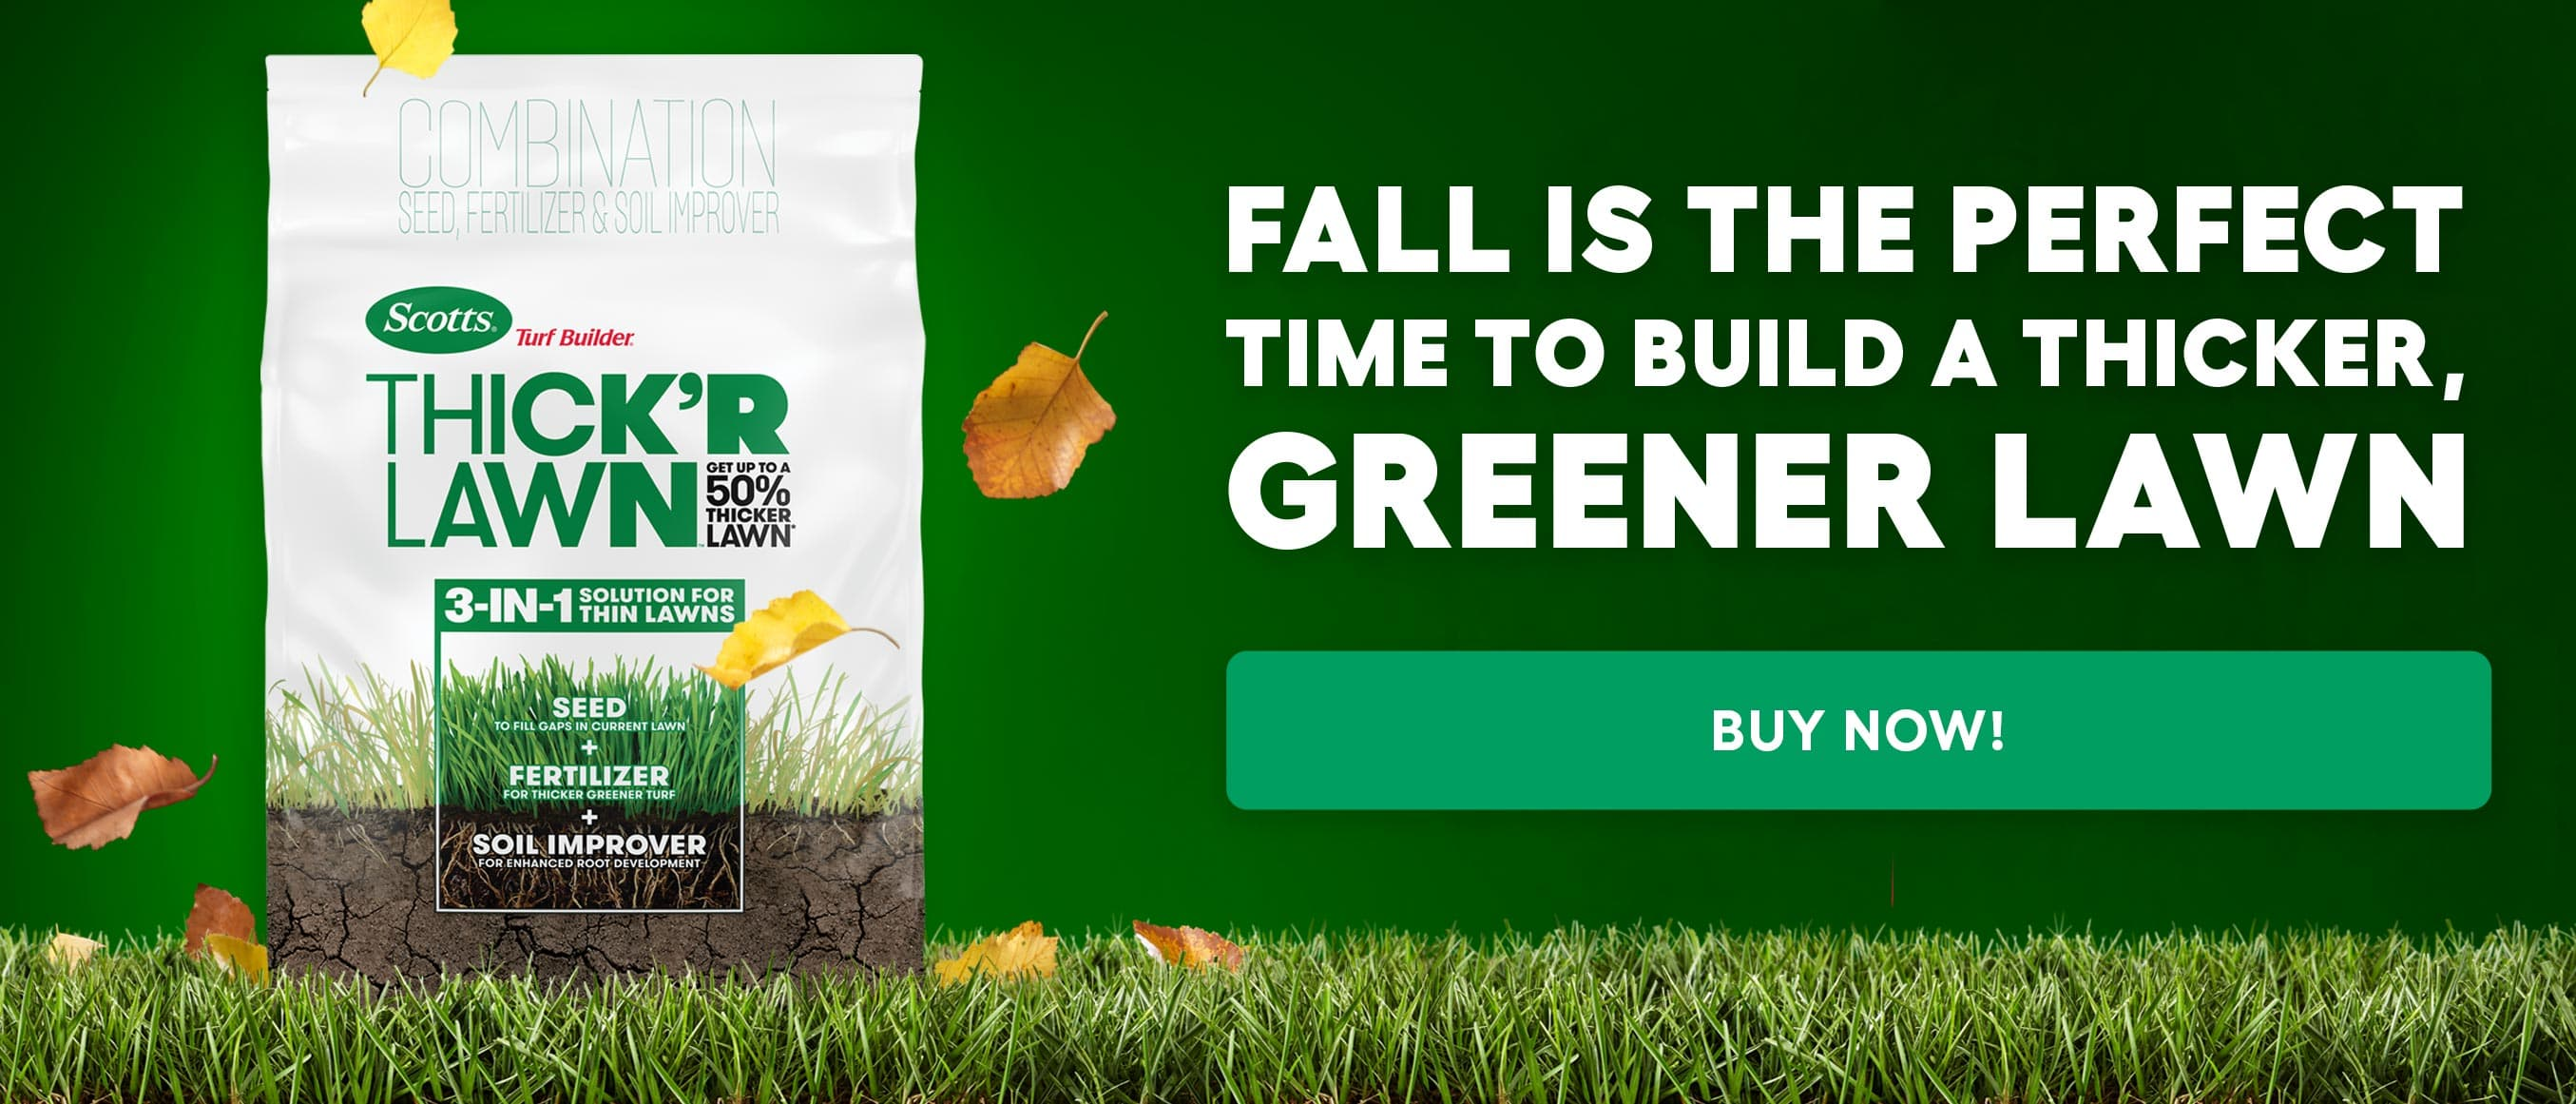 Fall is the perfect time to build a thicker, greener lawn